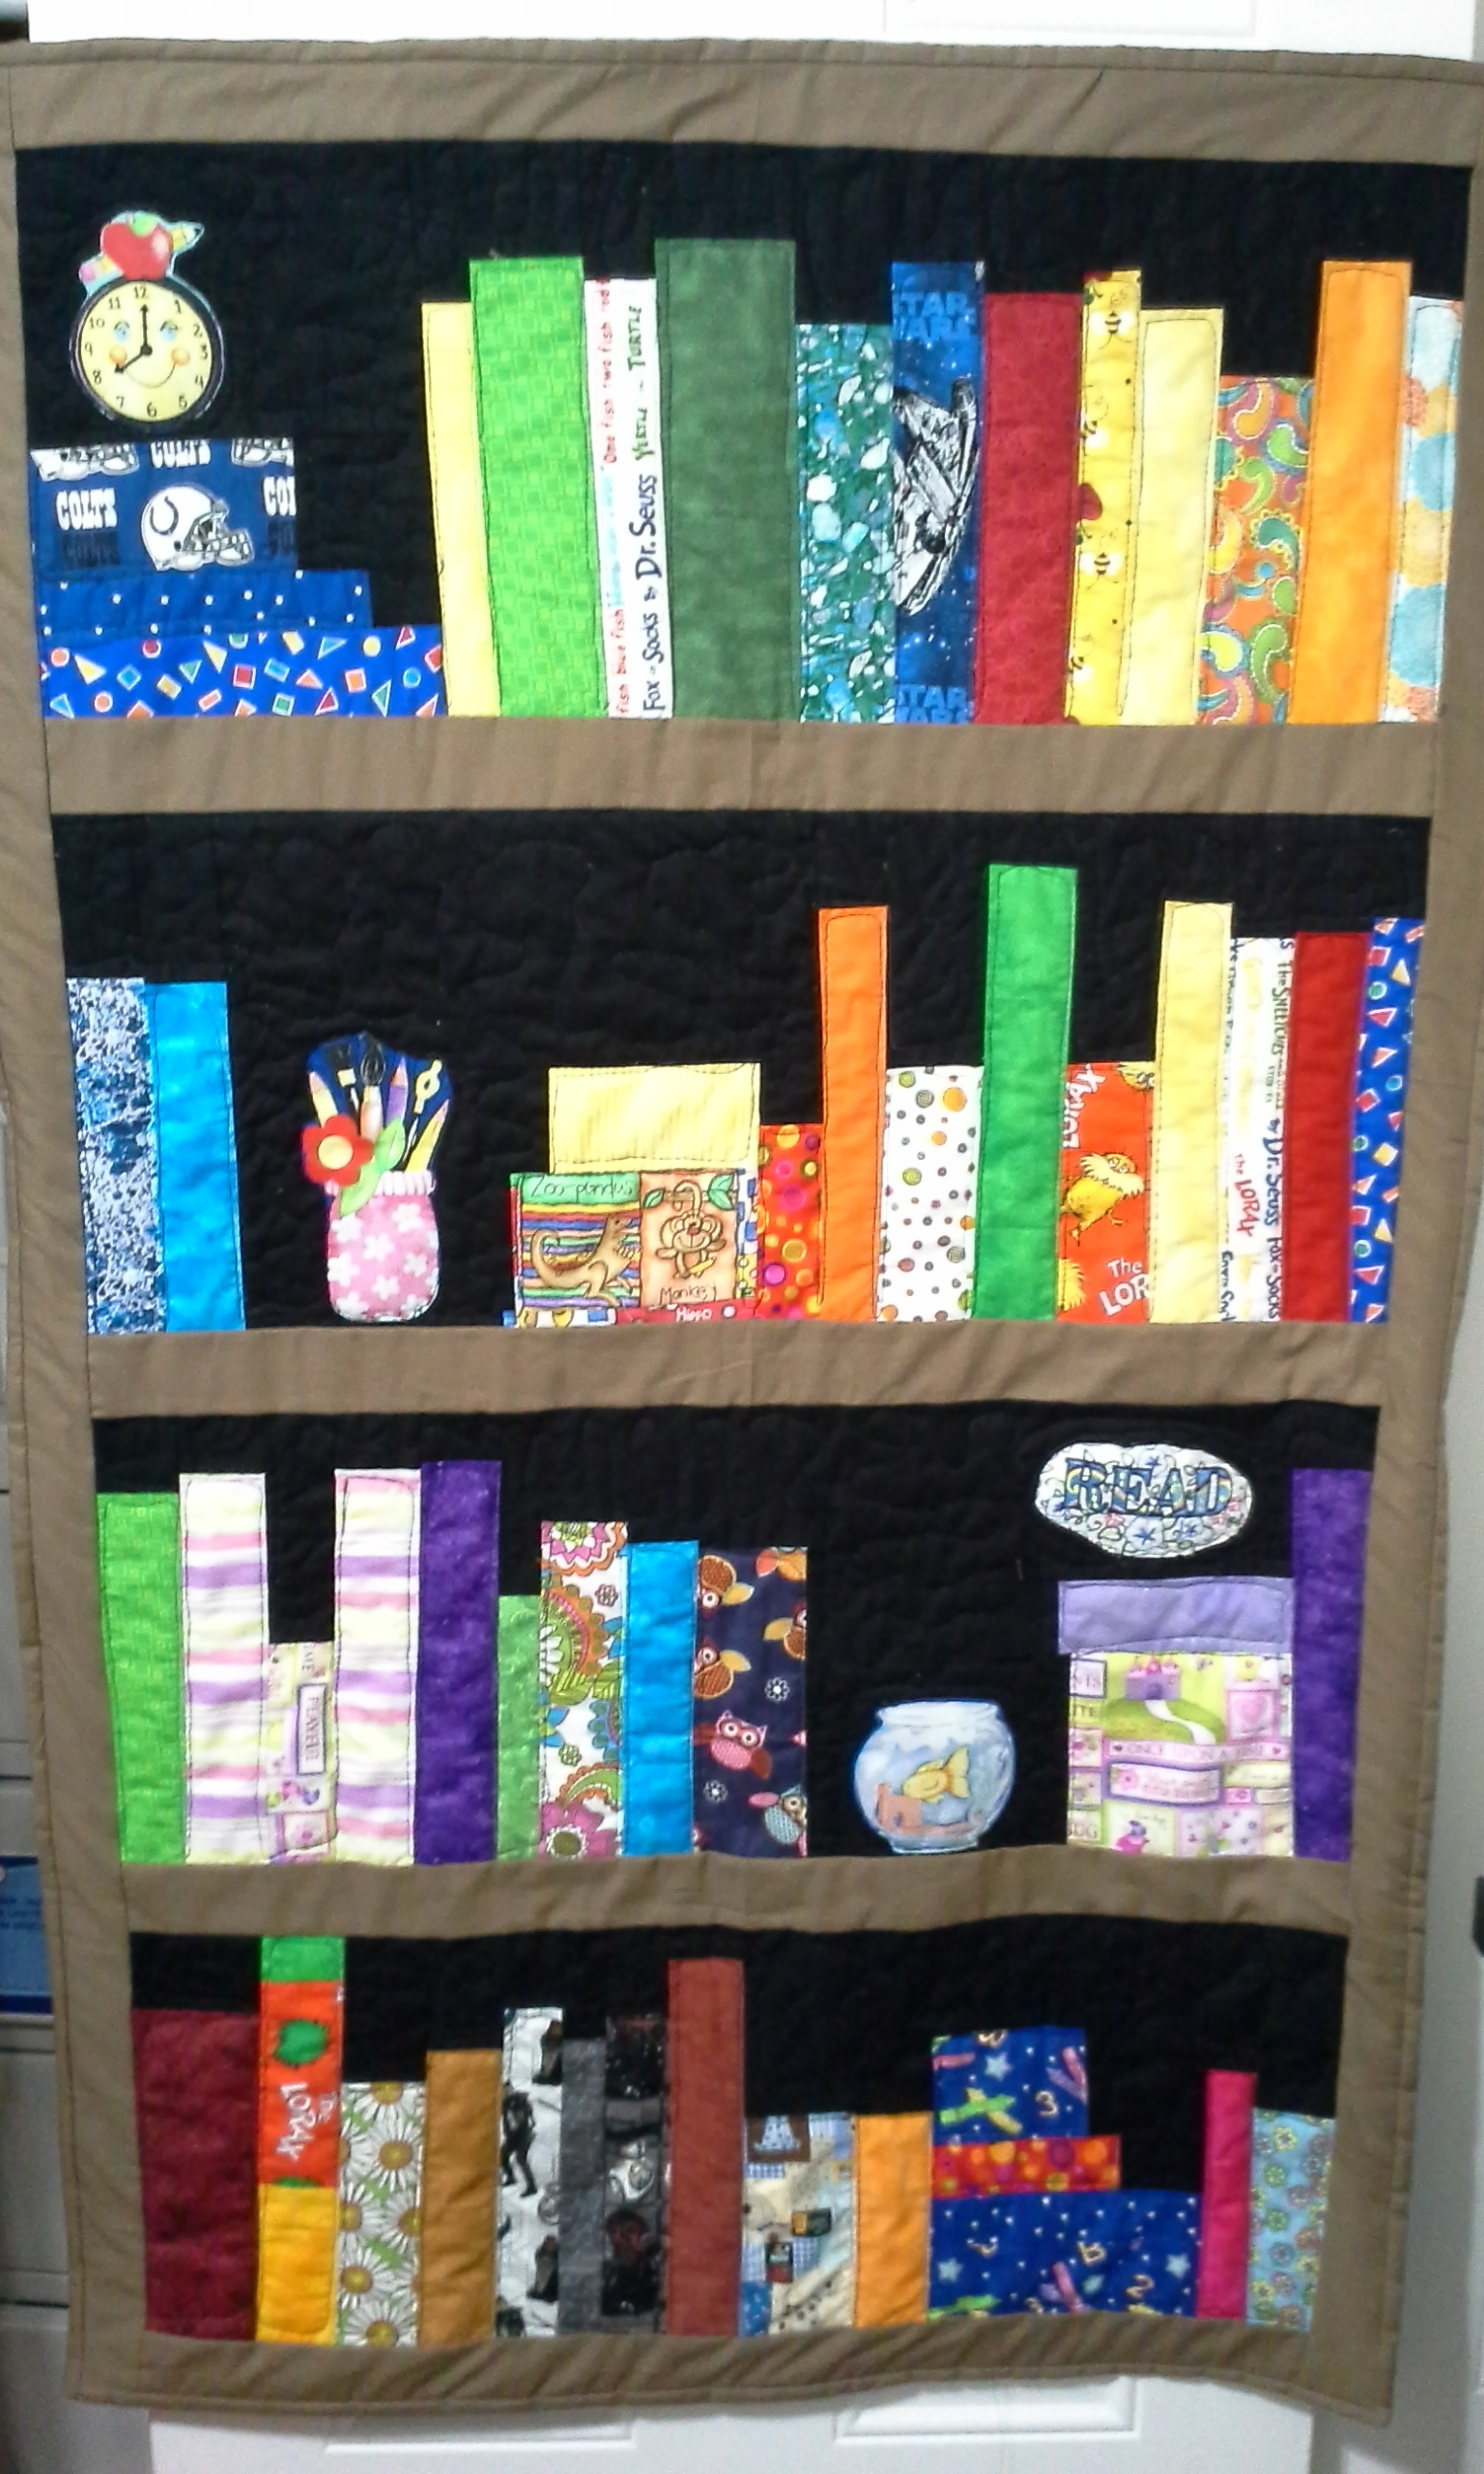 Gina's Library quilt from Week 8